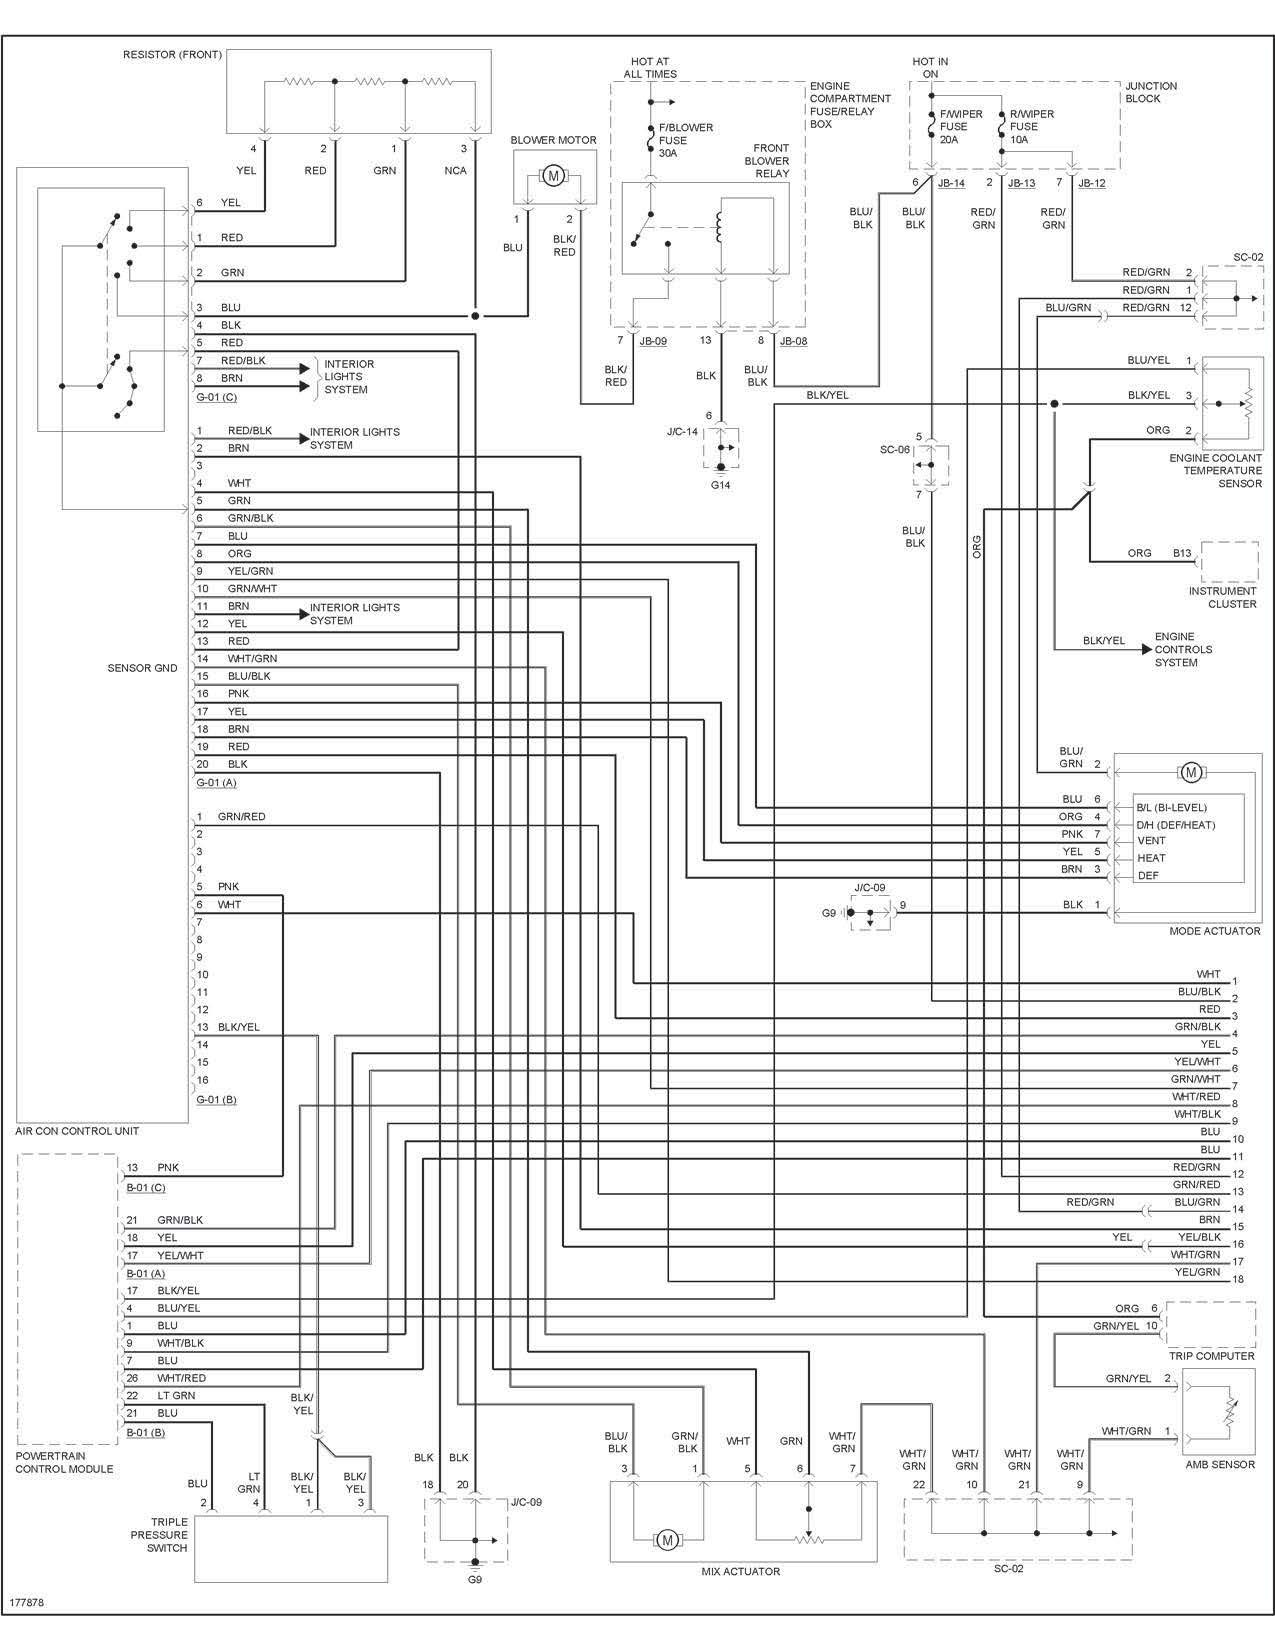 2008 kia sedona engine diagram - wiring diagram schematic doug-visit -  doug-visit.aliceviola.it  aliceviola.it